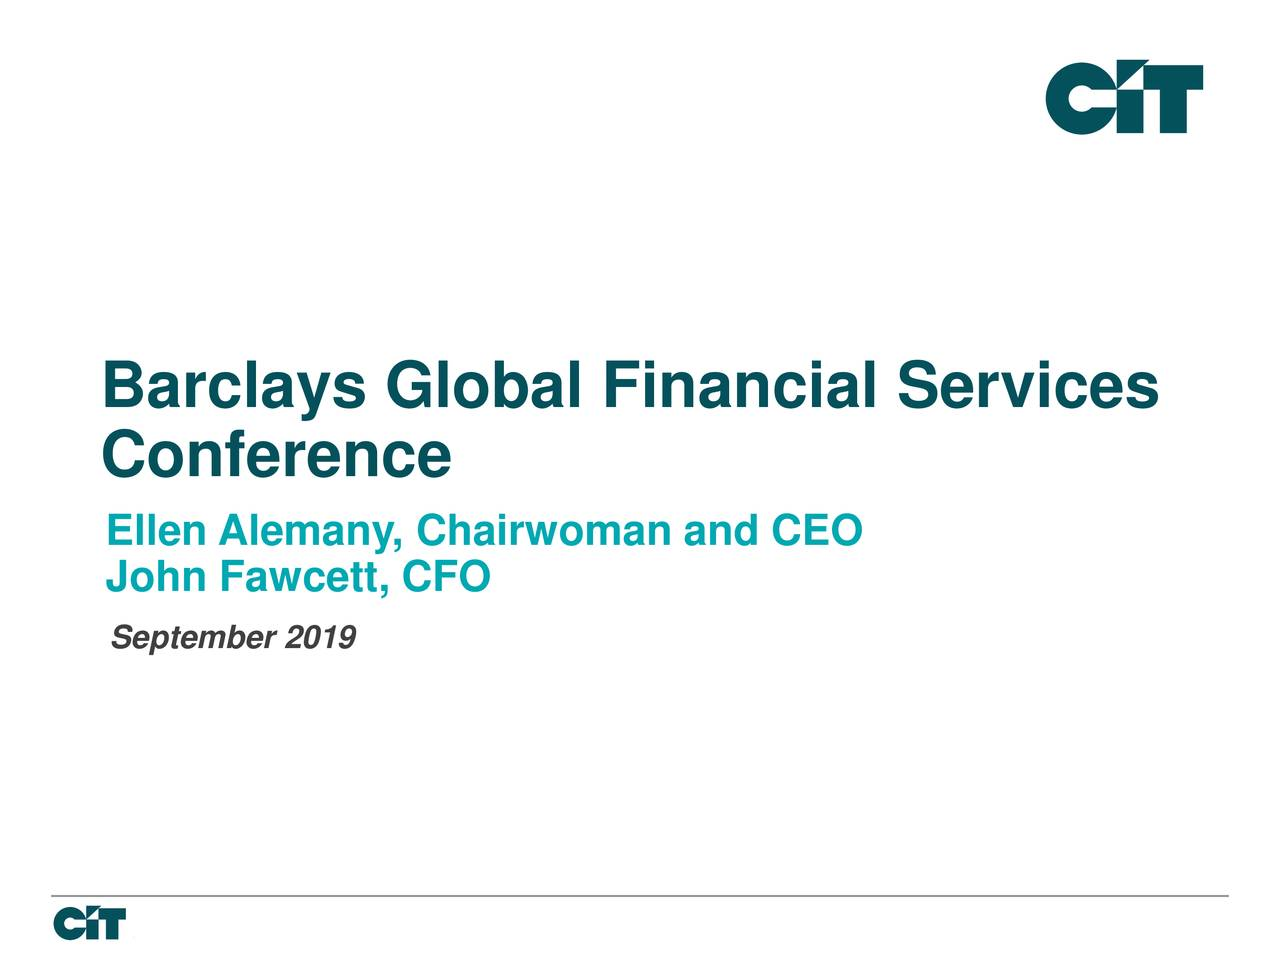 Barclays Global Financial Services